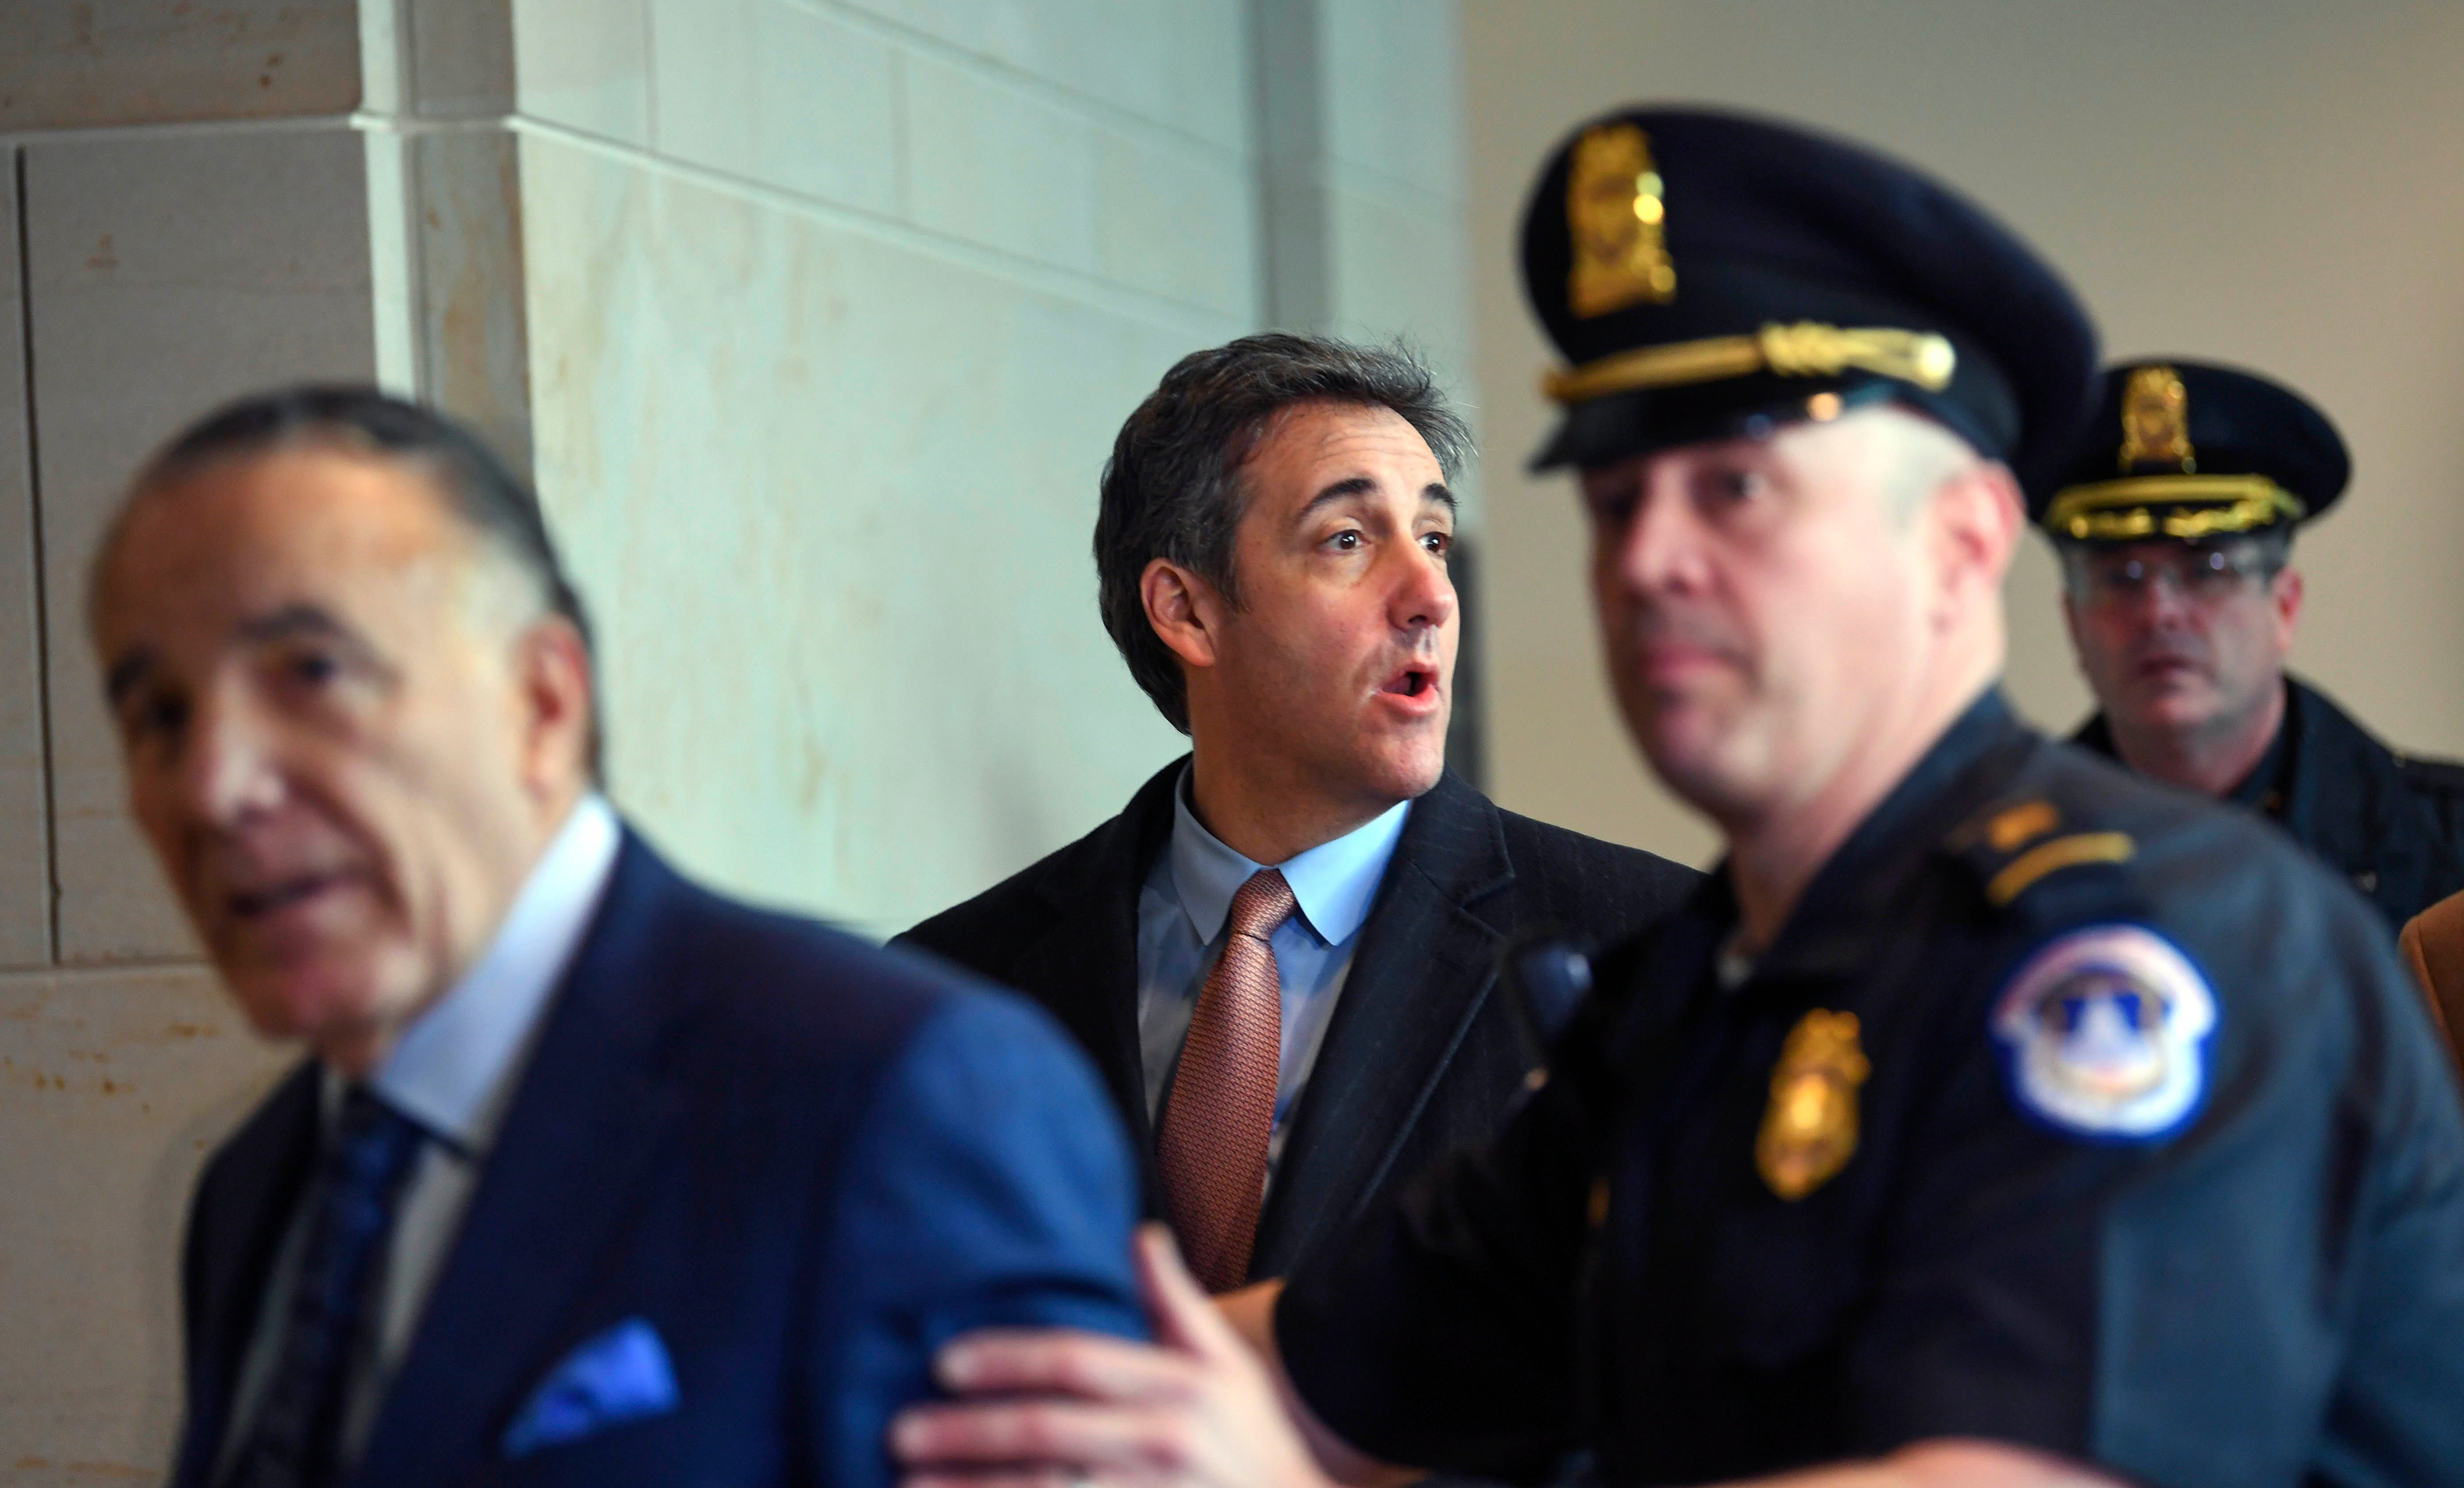 Michael Cohen sues Trump Organization for legal fees incurred after turning on Trump